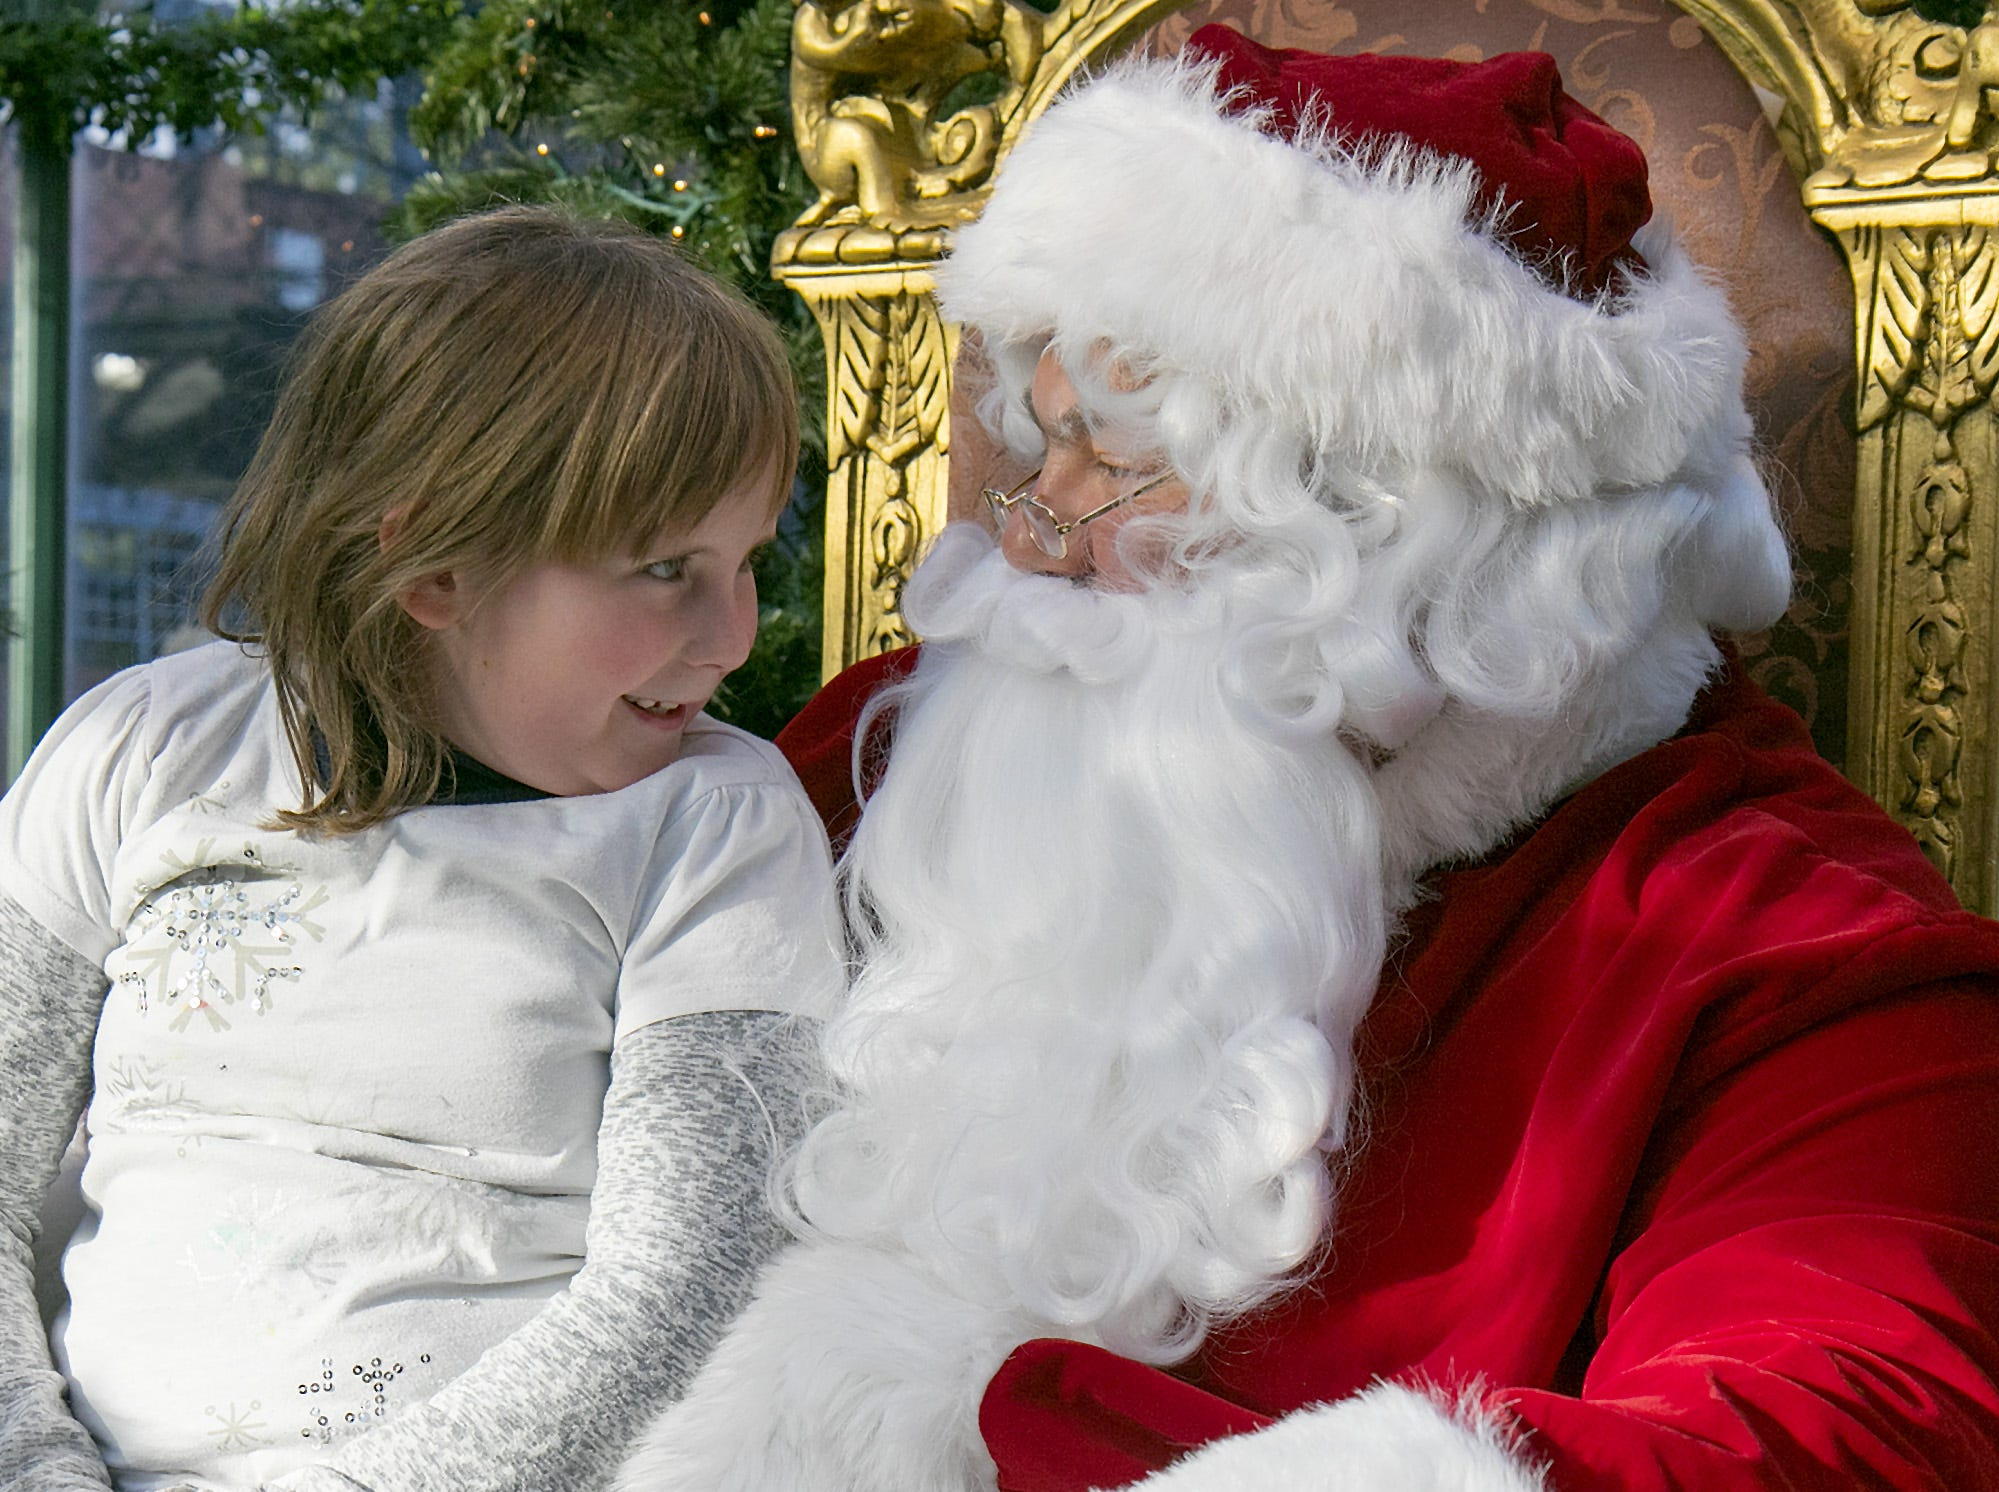 Katie Werner, 7, of Lawrenceville, meets Santa before the start of the Parade of Lights in Corning in 2015.